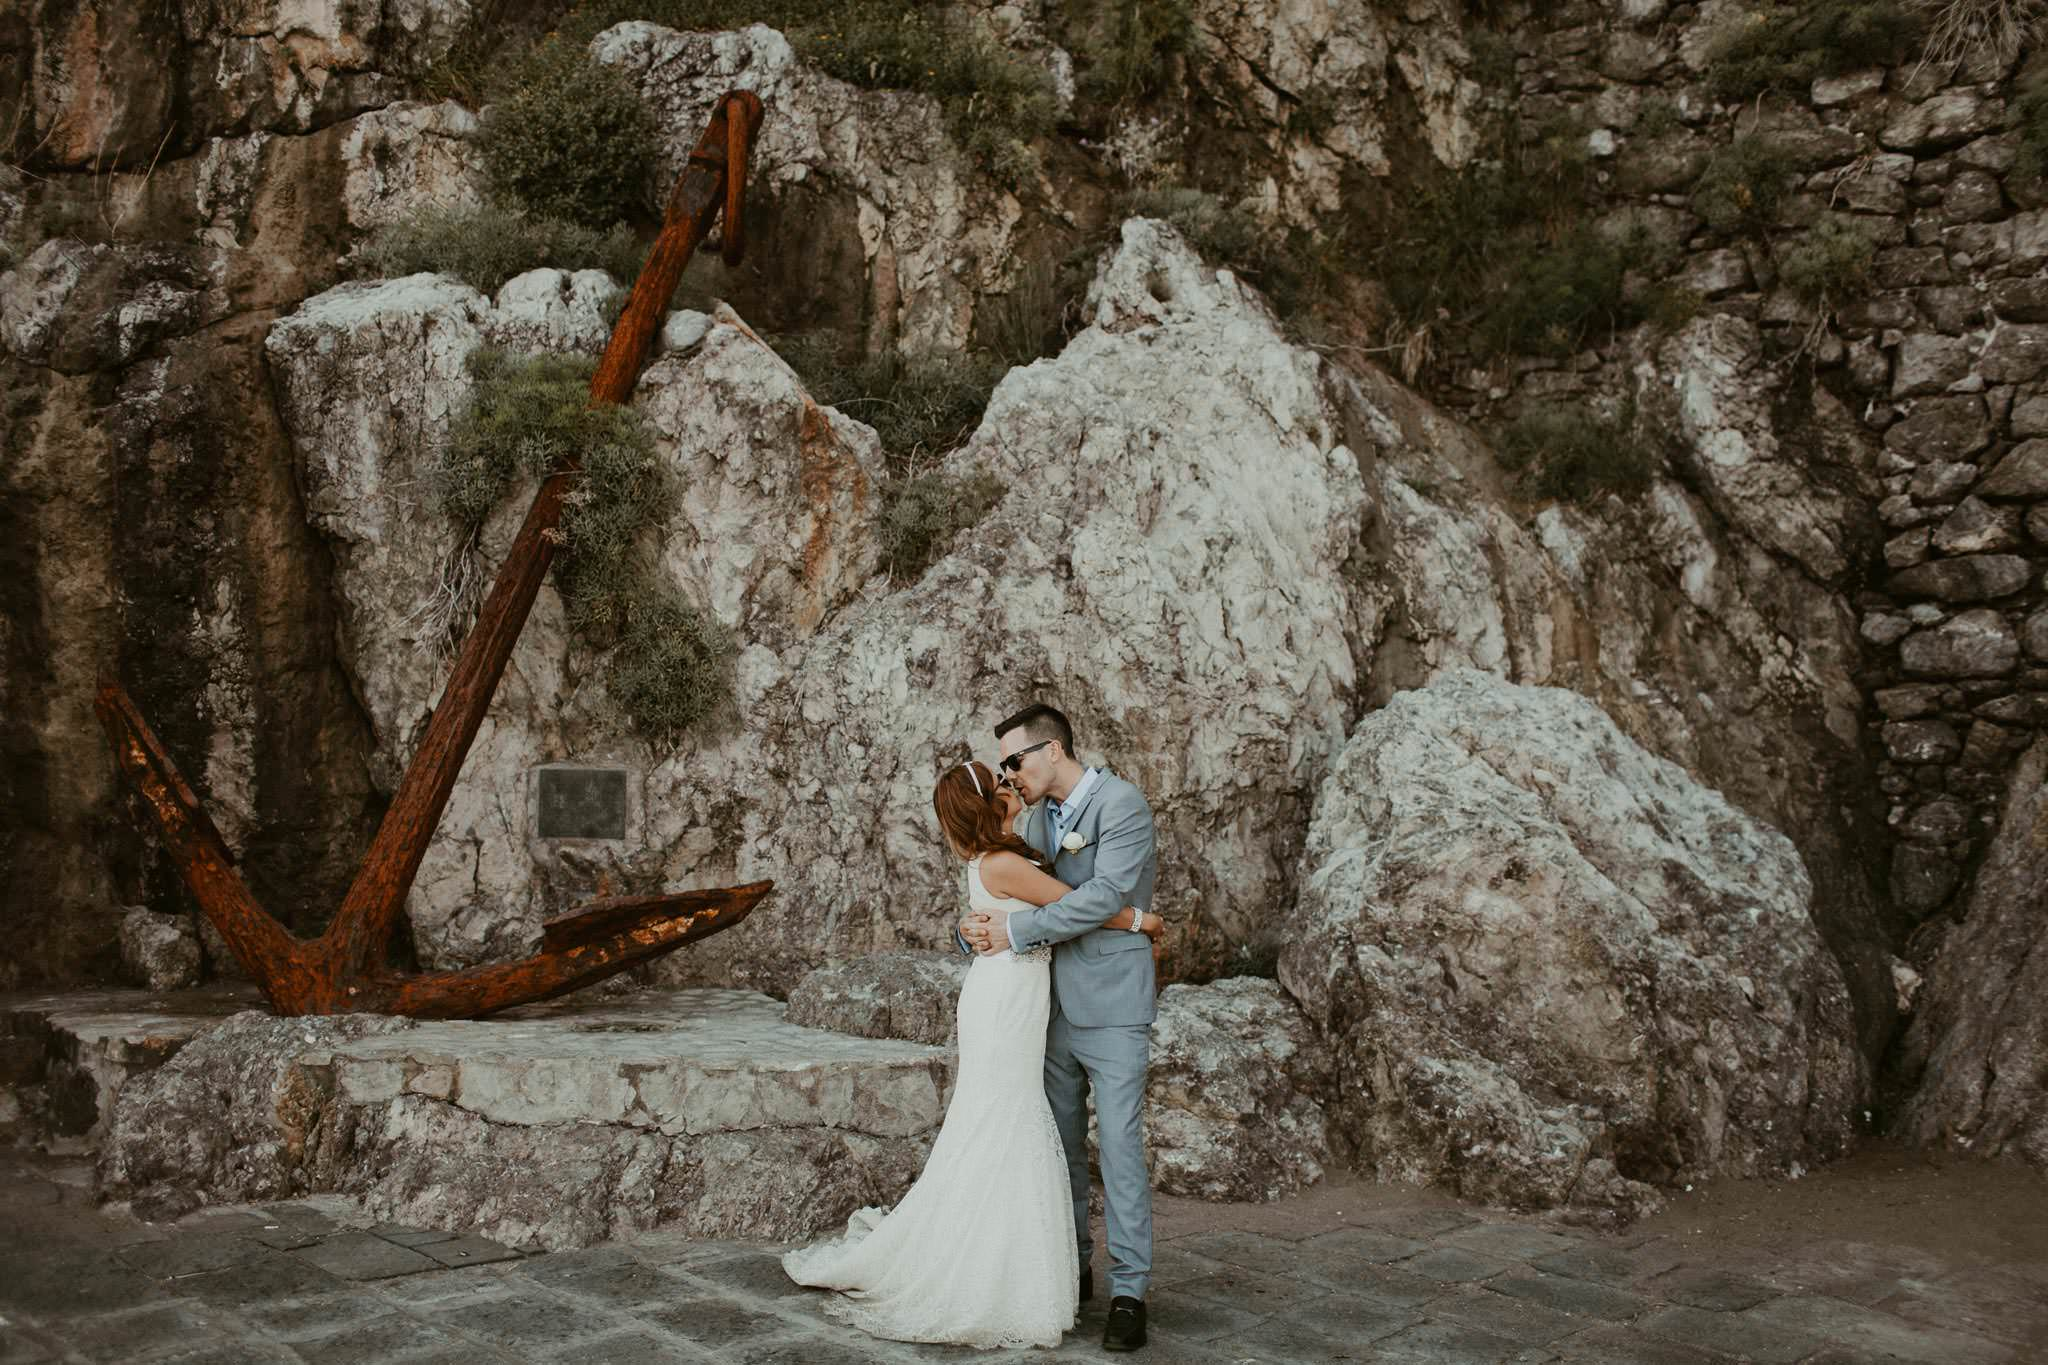 positano-wedding-photographer-102